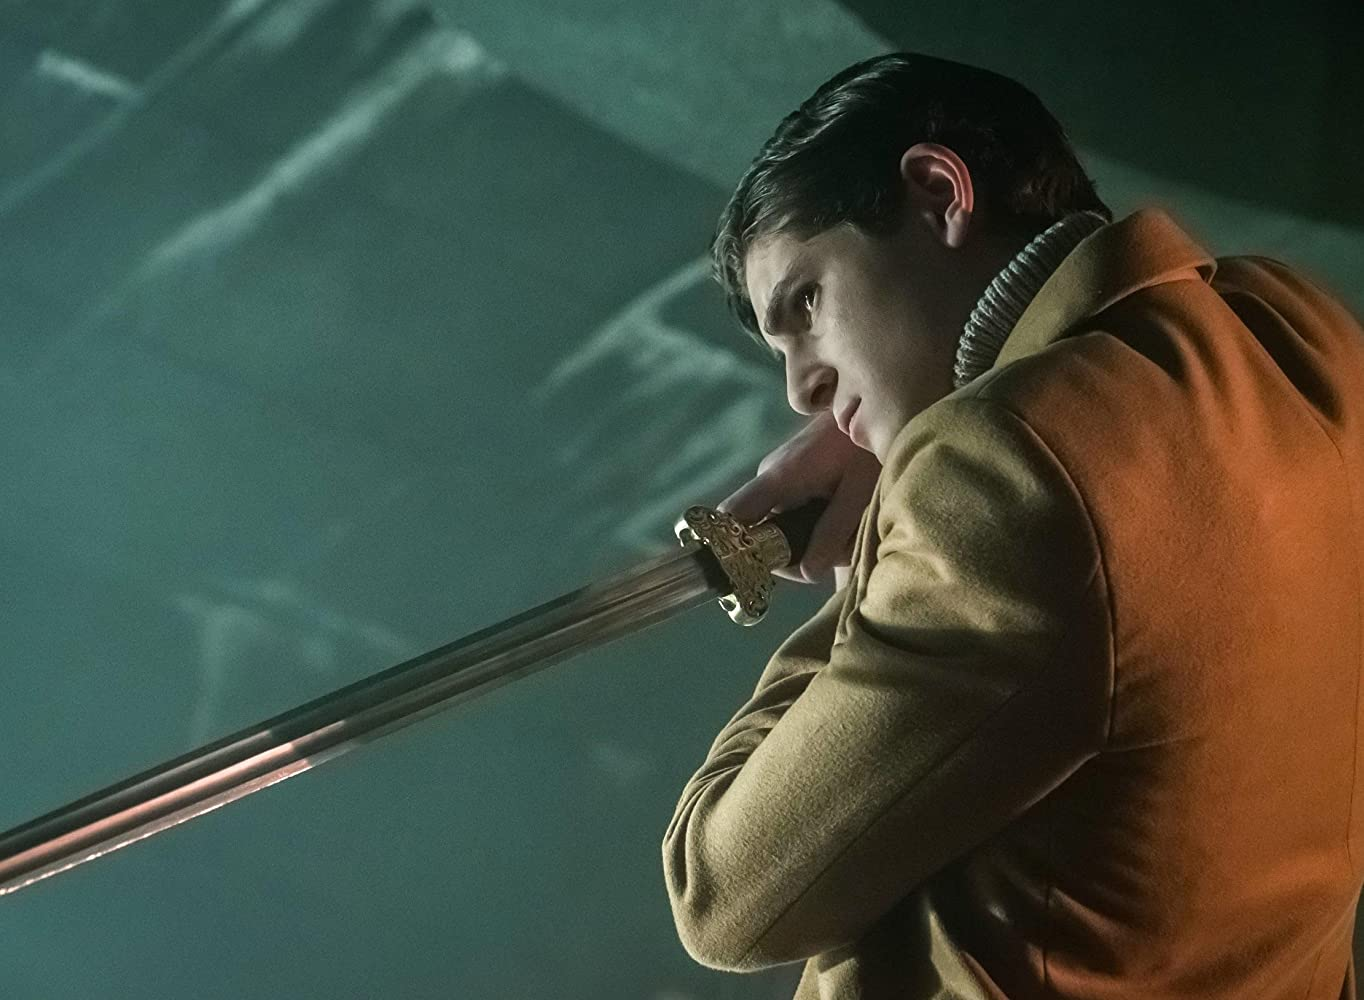 Gotham S03E12 – Mad City: Ghosts